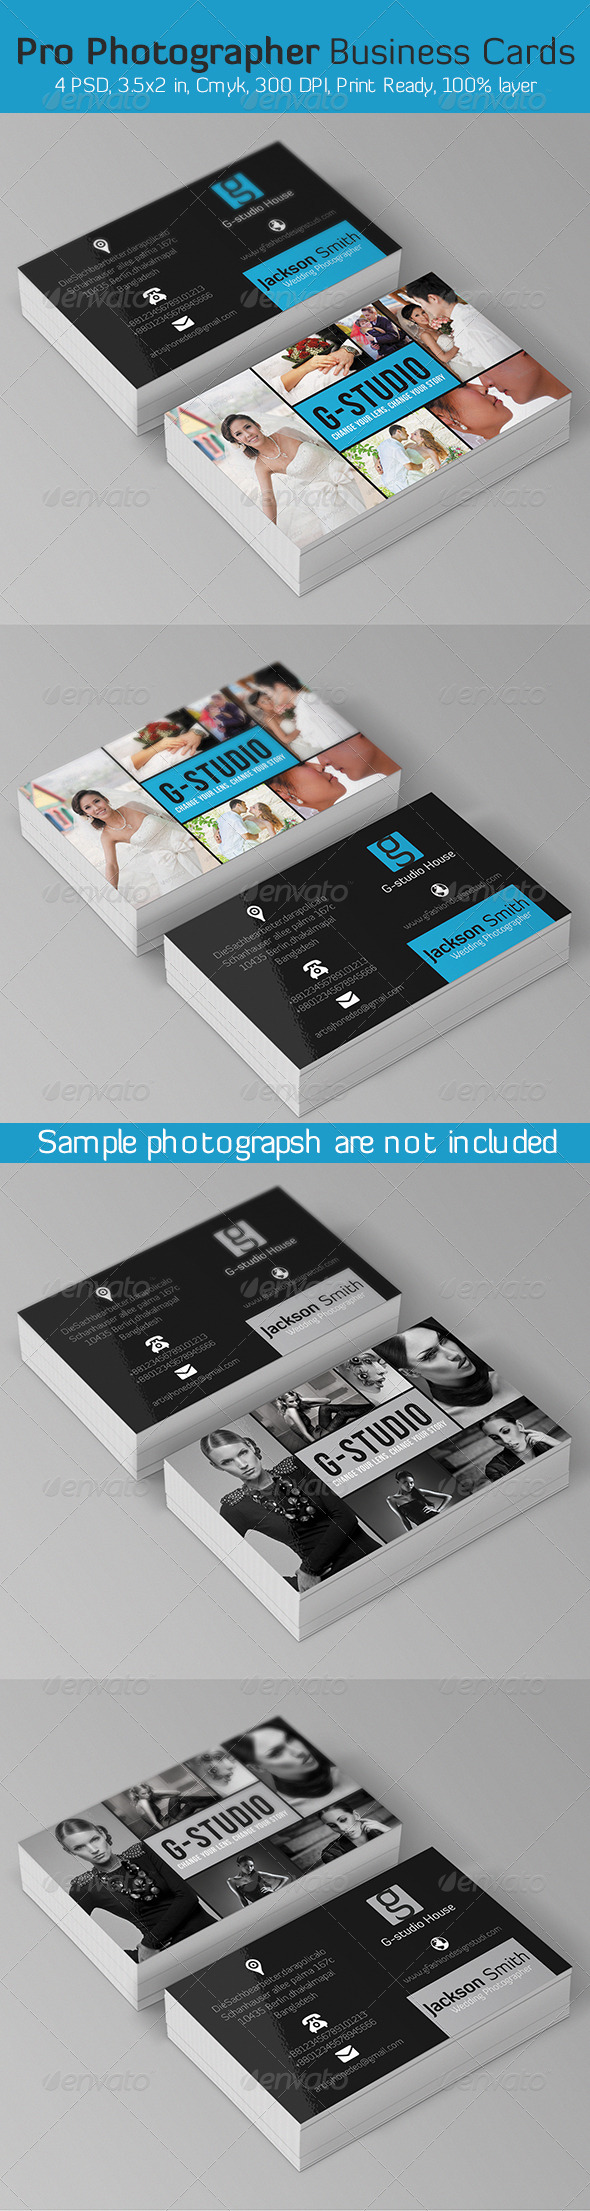 GraphicRiver Pro Photographer Business Card 5997770